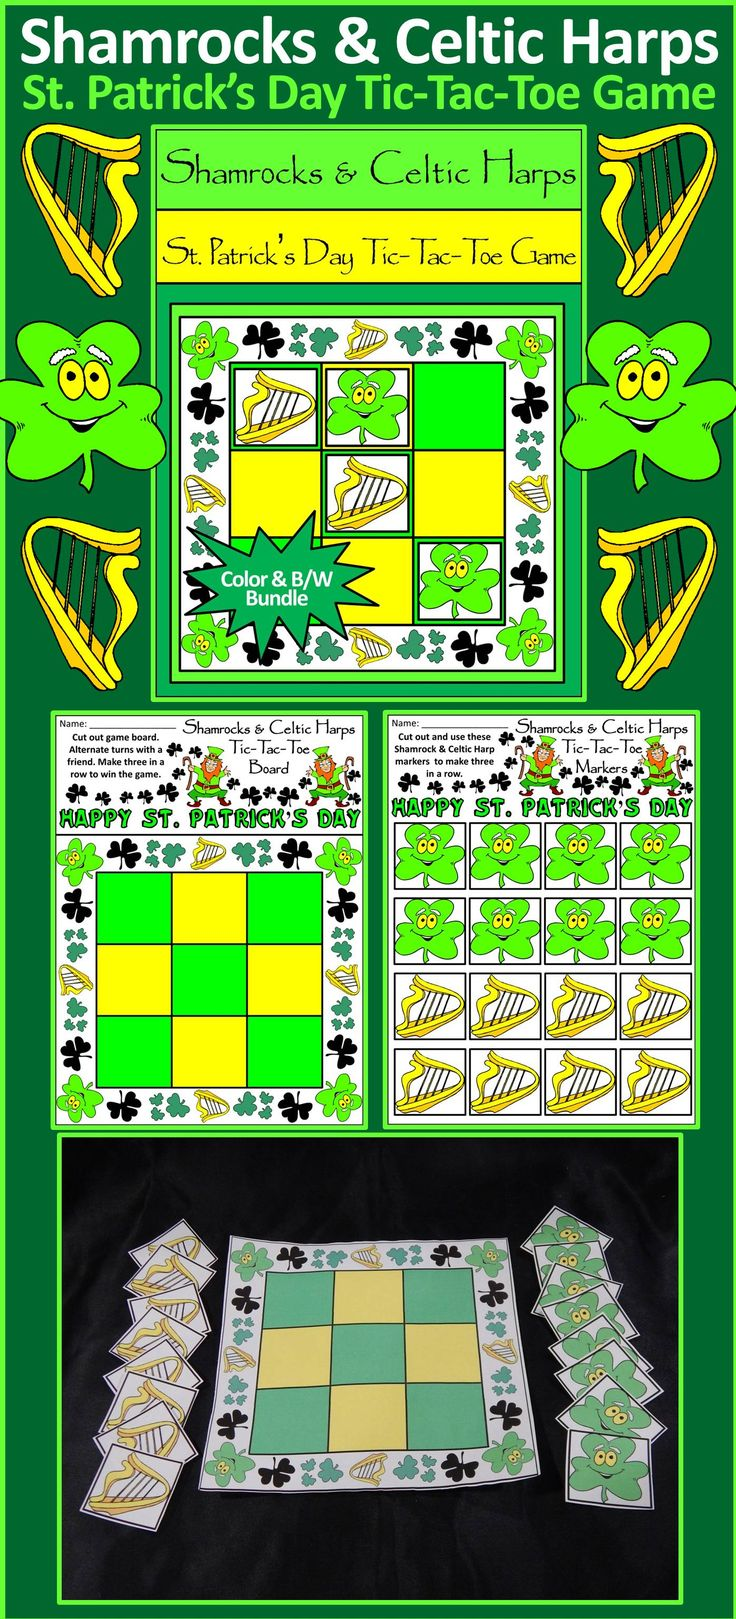 Shamrocks & Celtic Harps St. Patrick's Day Tic-Tac-Toe Game: Contains all the necessary components for playing the classic game. All pieces are decorated with Shamrocks & Celtic Harps for a rollicking Irish celebration! Great fun as a St. Patrick's Day game or party favor!  #St. #Saint #Patrick's #Day #Shamrock #Celtic #Harp #Party #Game #Activities #Teacherspayteachers